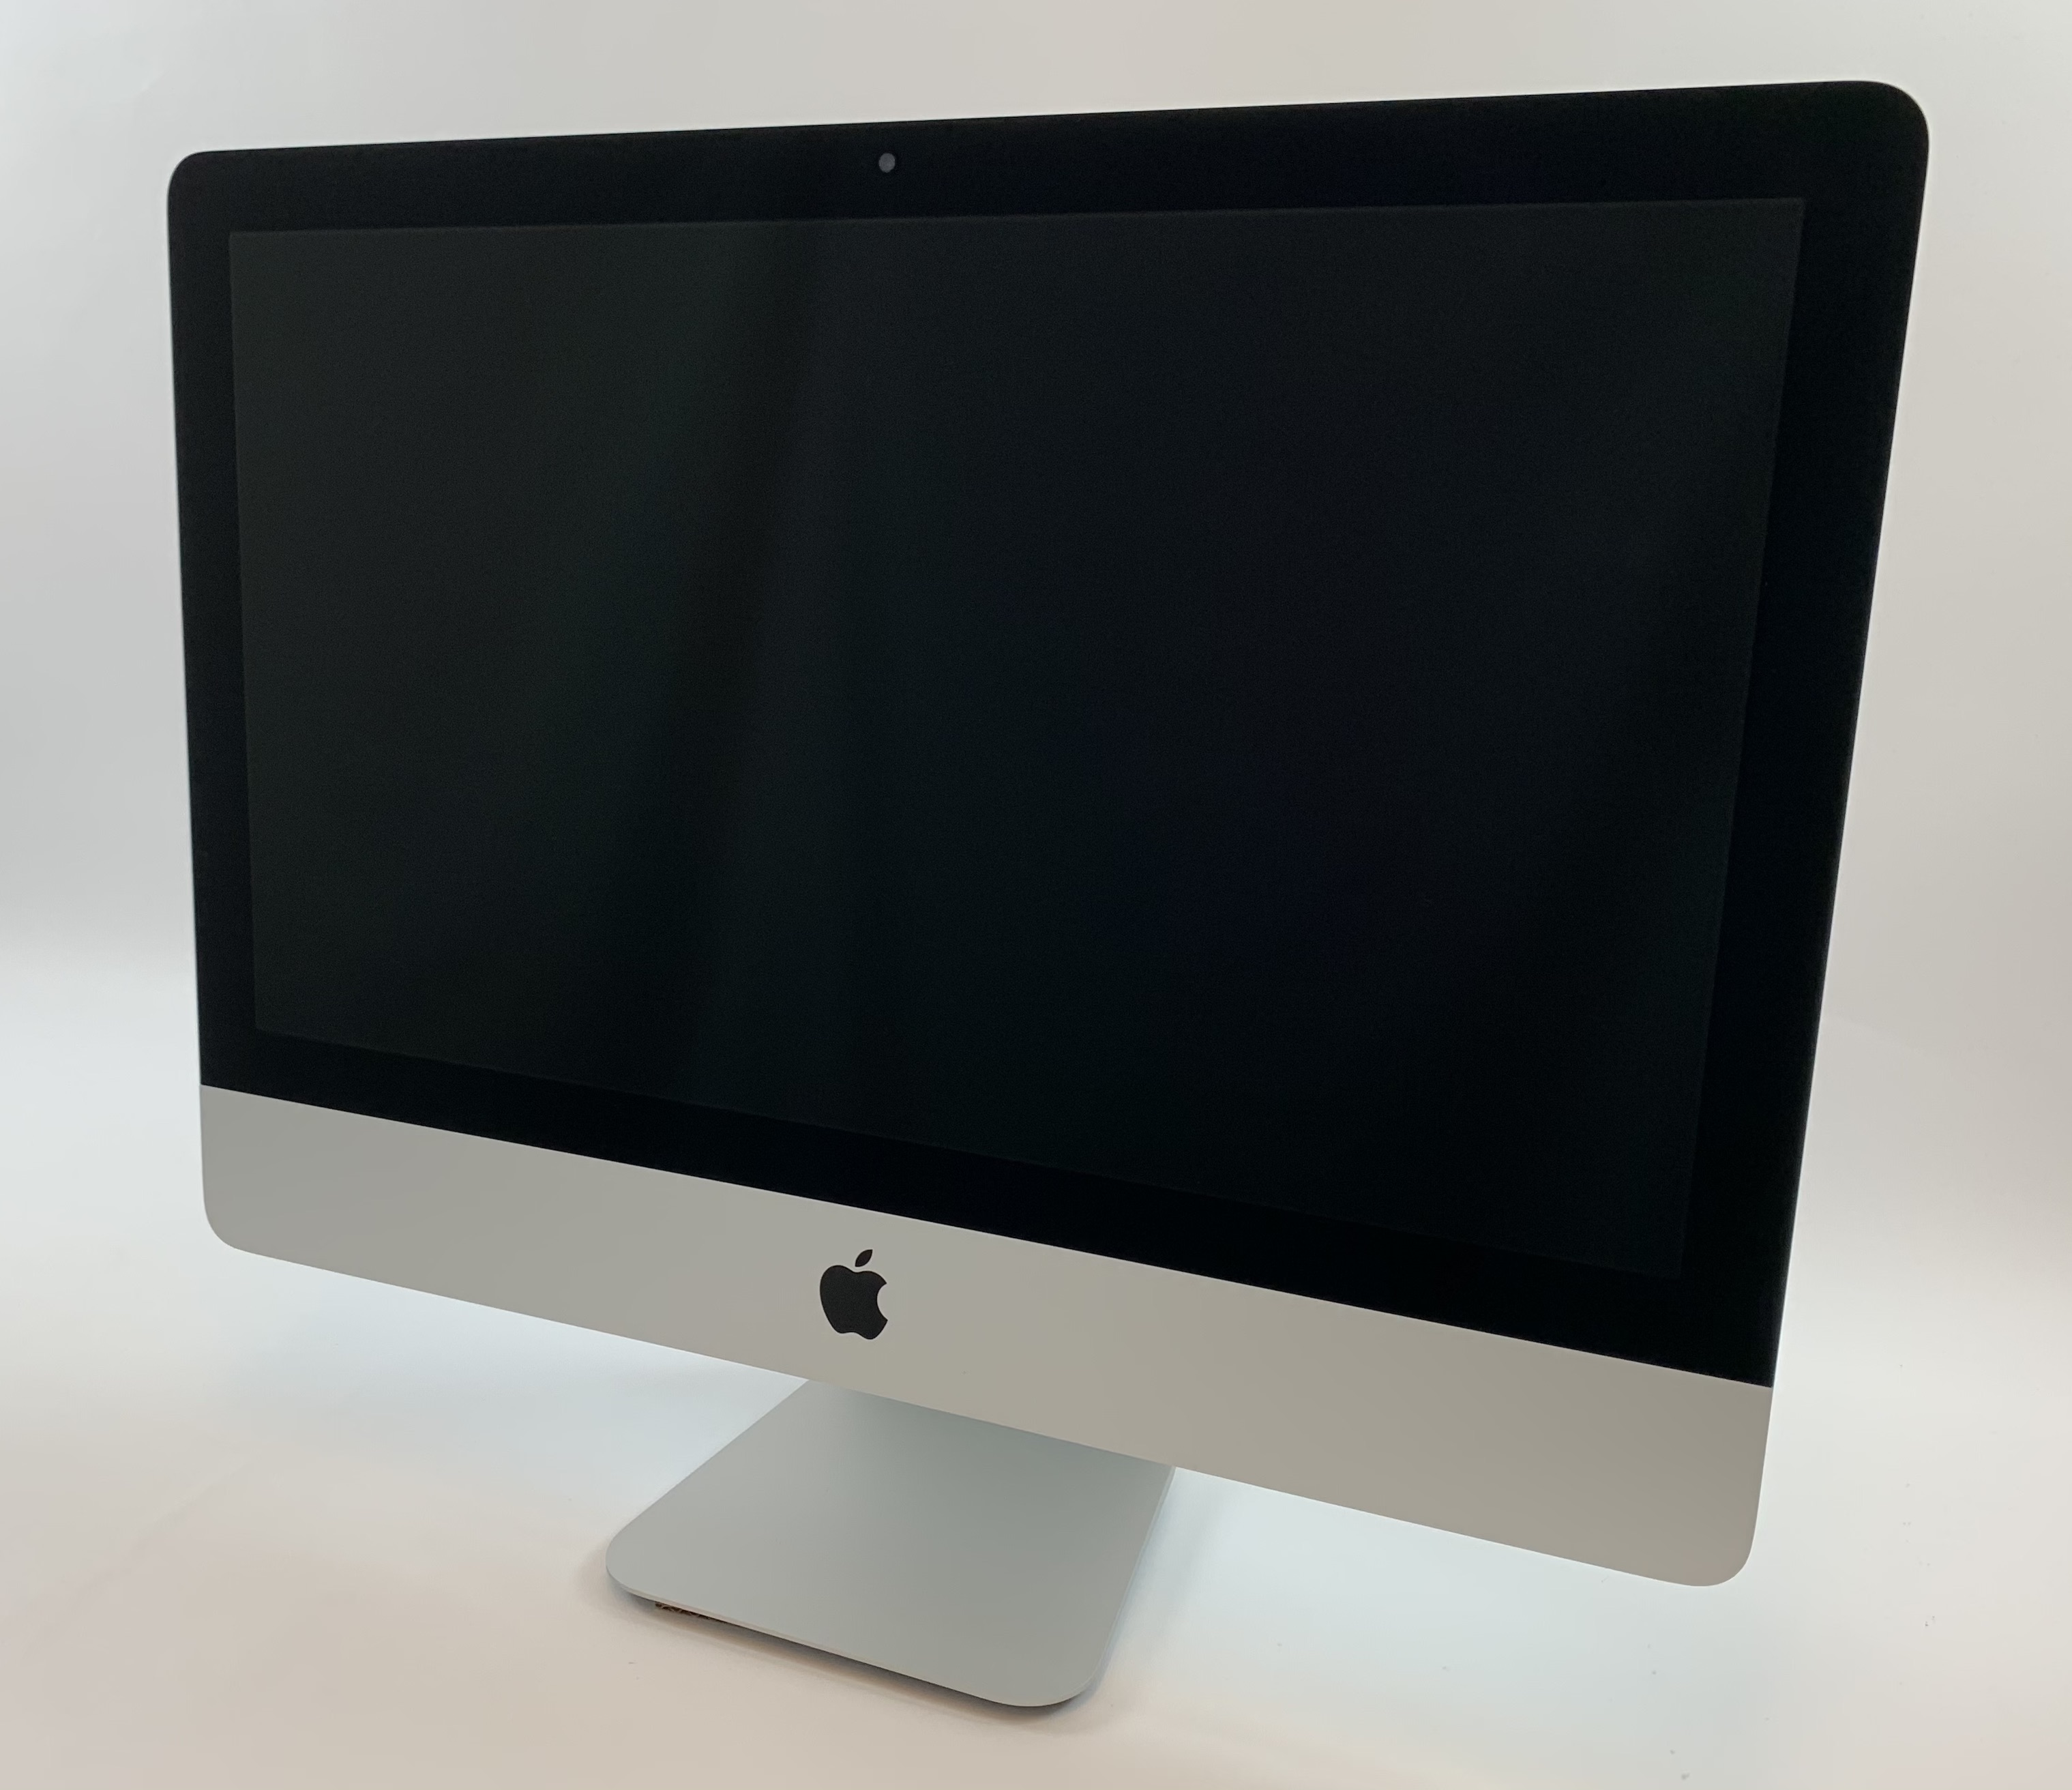 "iMac 21.5"" Retina 4K Early 2019 (Intel Quad-Core i3 3.6 GHz 8 GB RAM 1 TB HDD), Intel Quad-Core i3 3.6 GHz, 8 GB RAM, 1 TB HDD, Kuva 1"